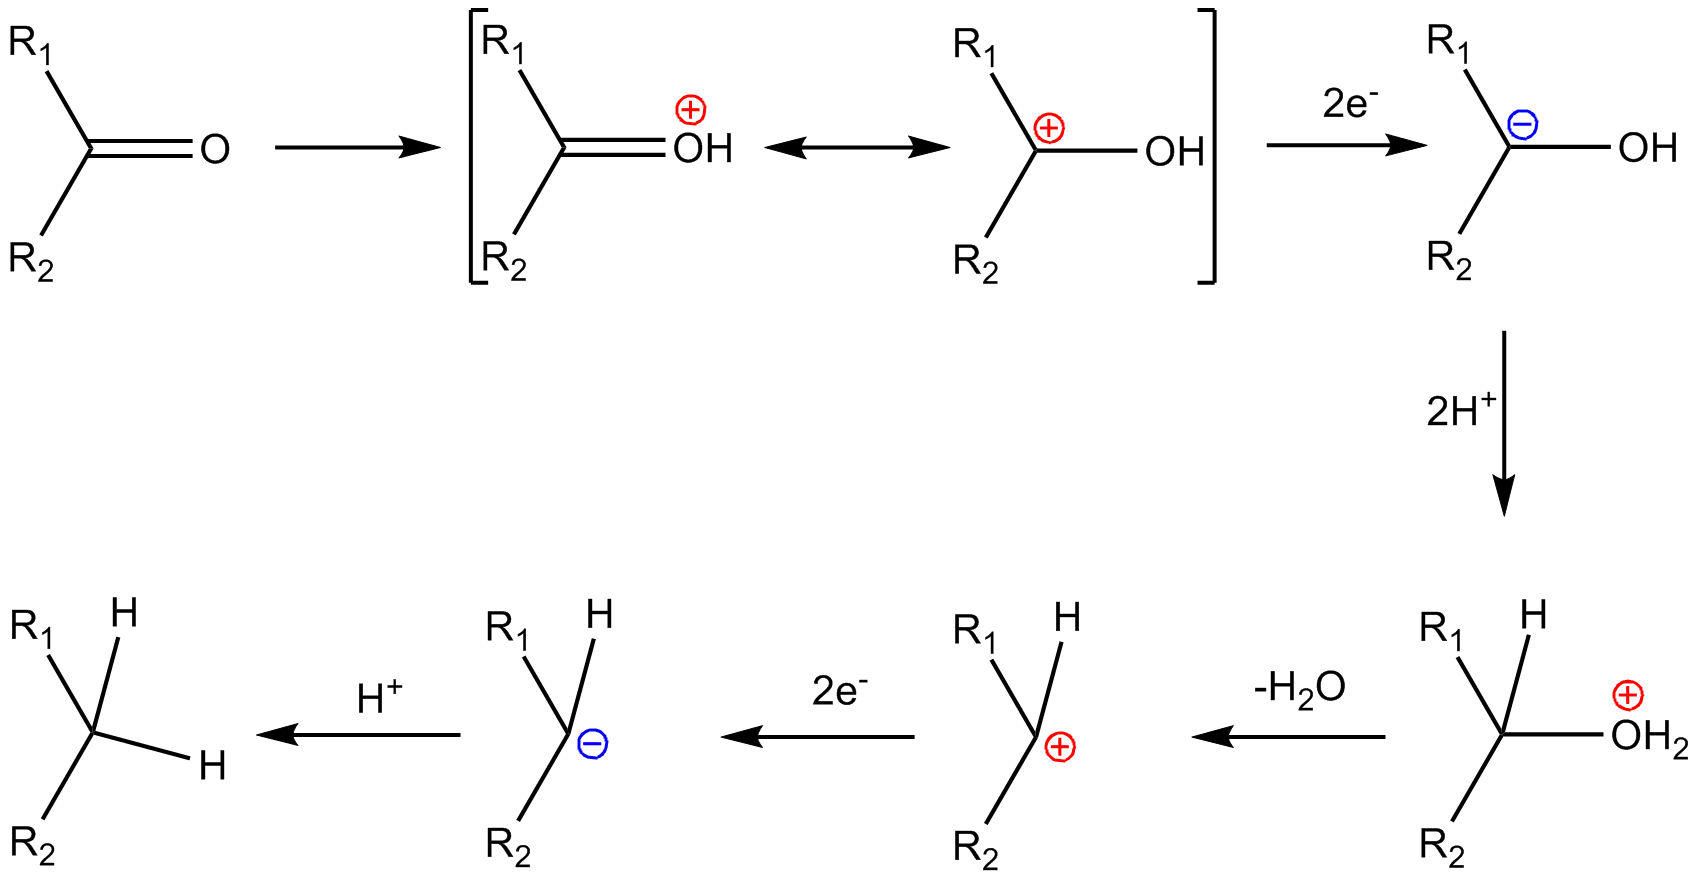 Type Of Reaction With Baking A Cake Endergonic